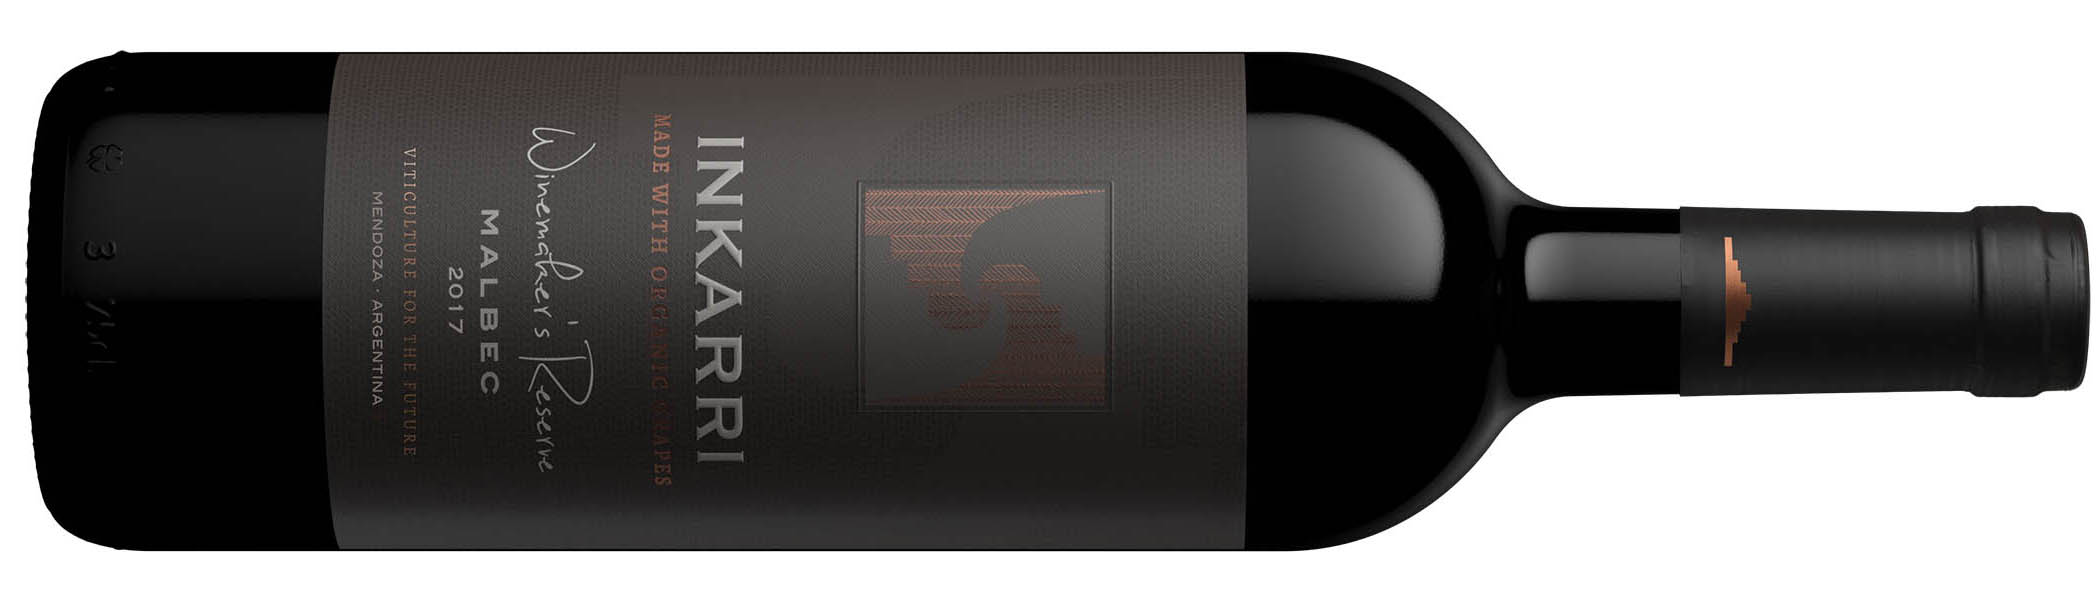 Inkarri Winemaker's Reserve Malbec 90 Point Wines